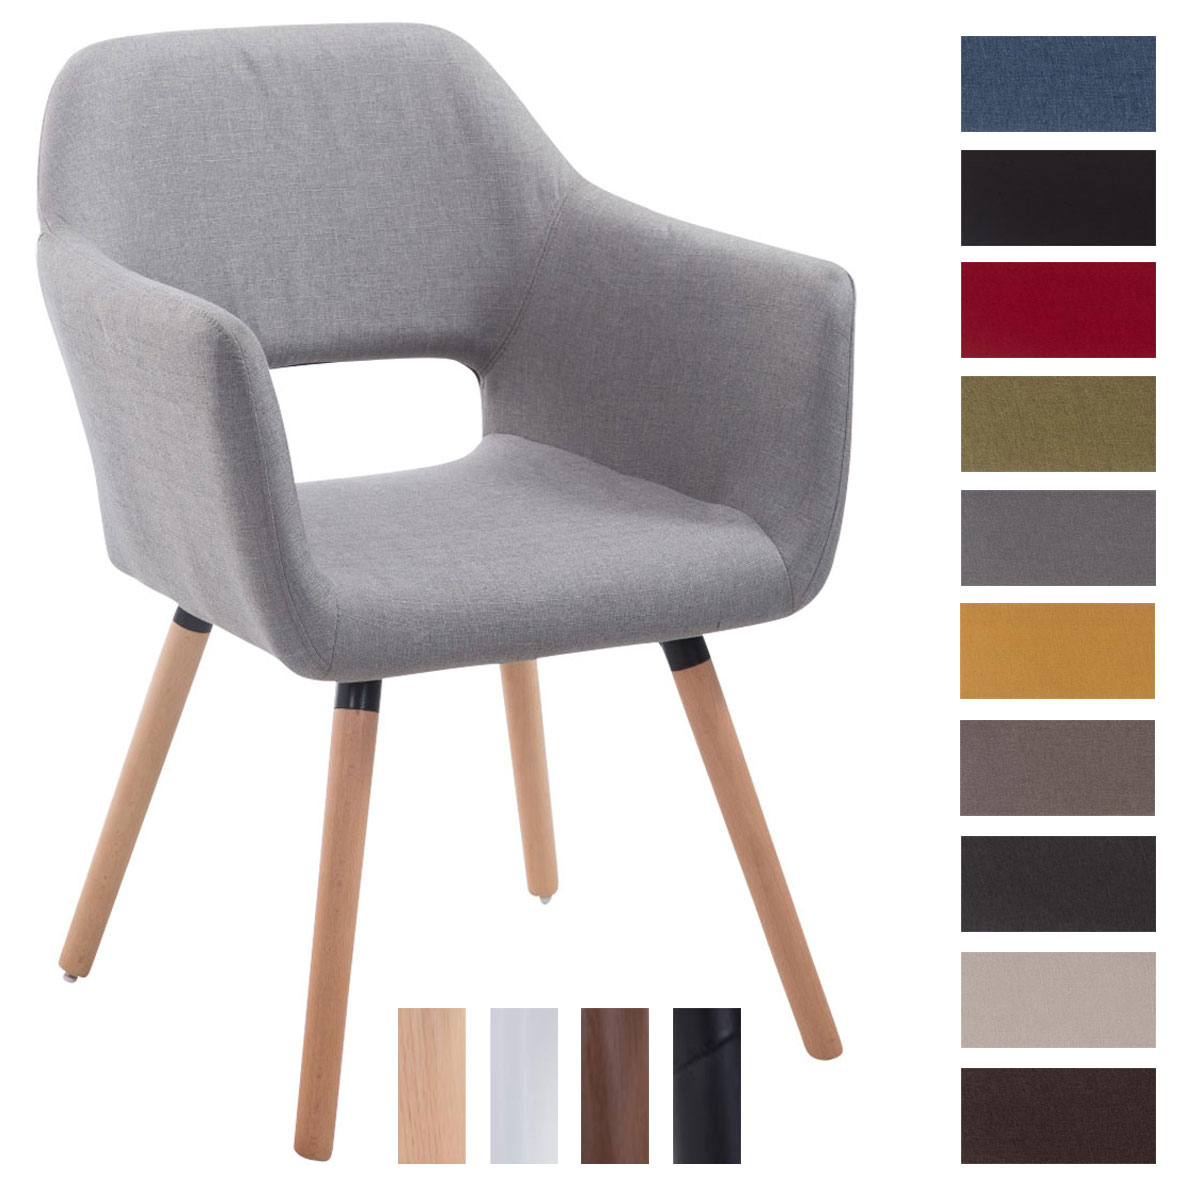 ergonomic chair auckland dental parts description visitor tweed lounger waiting room dining